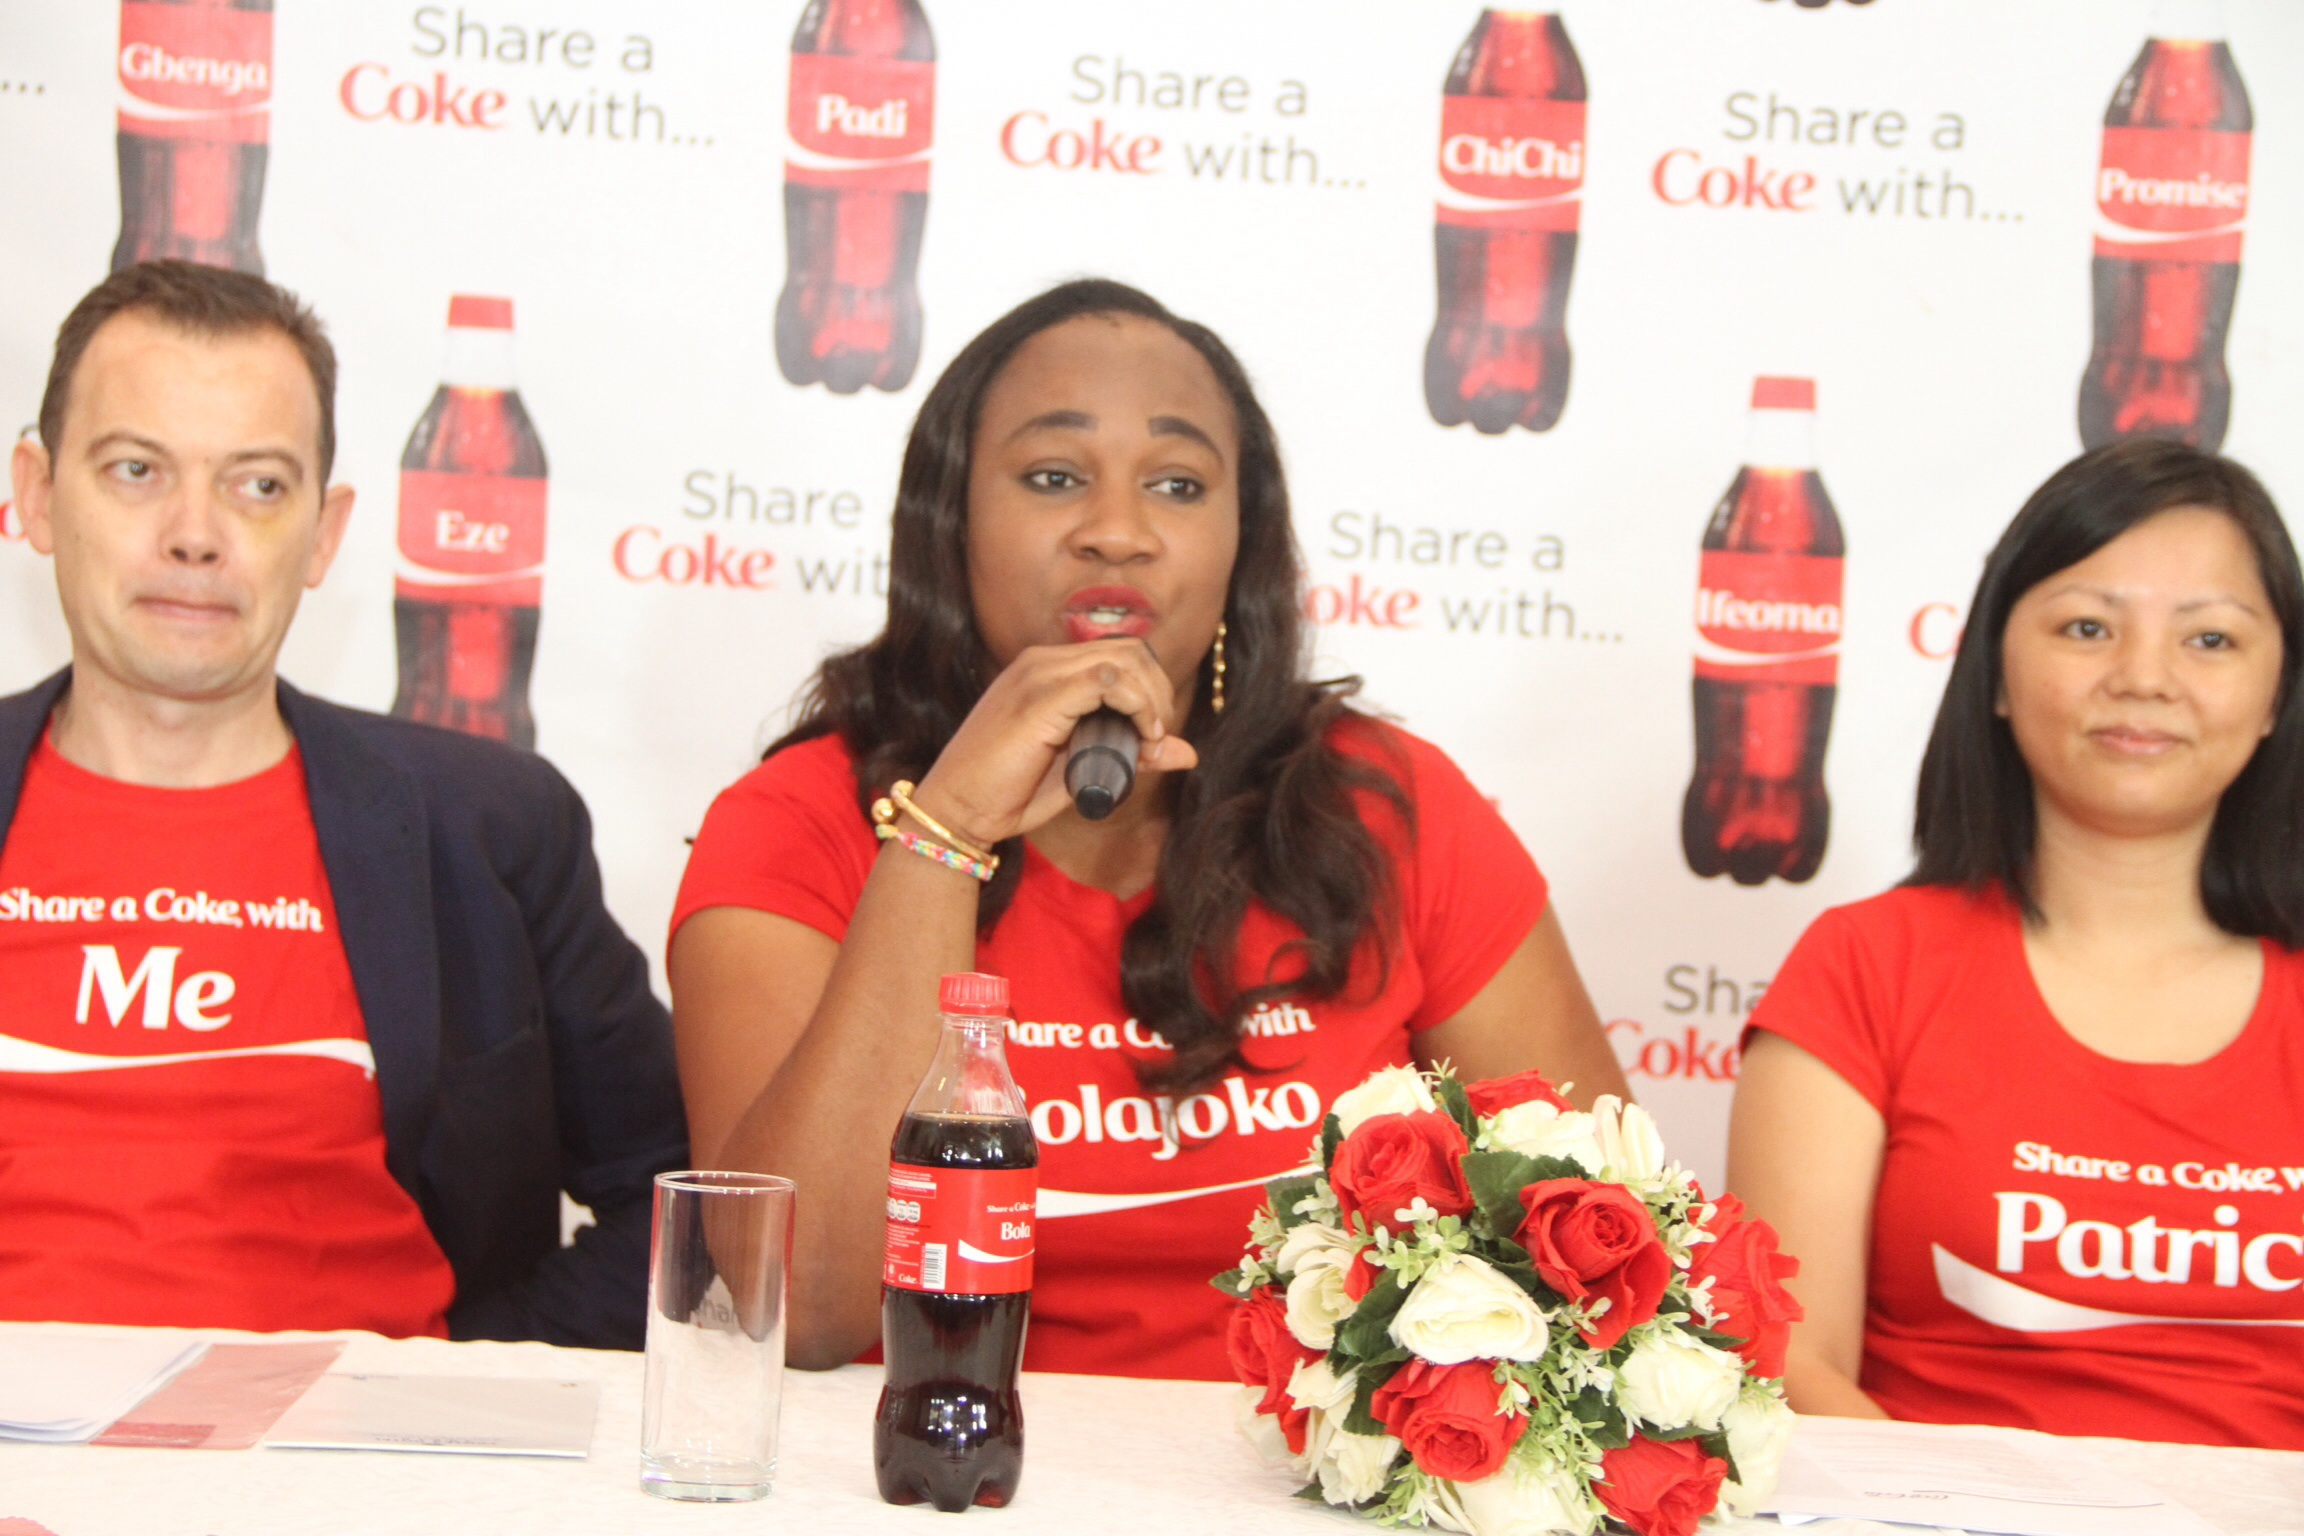 the coca cola company marketing r The coca-cola company (nyse: ko) is a total beverage company, offering over 500 brands in more than 200 countries and territories.